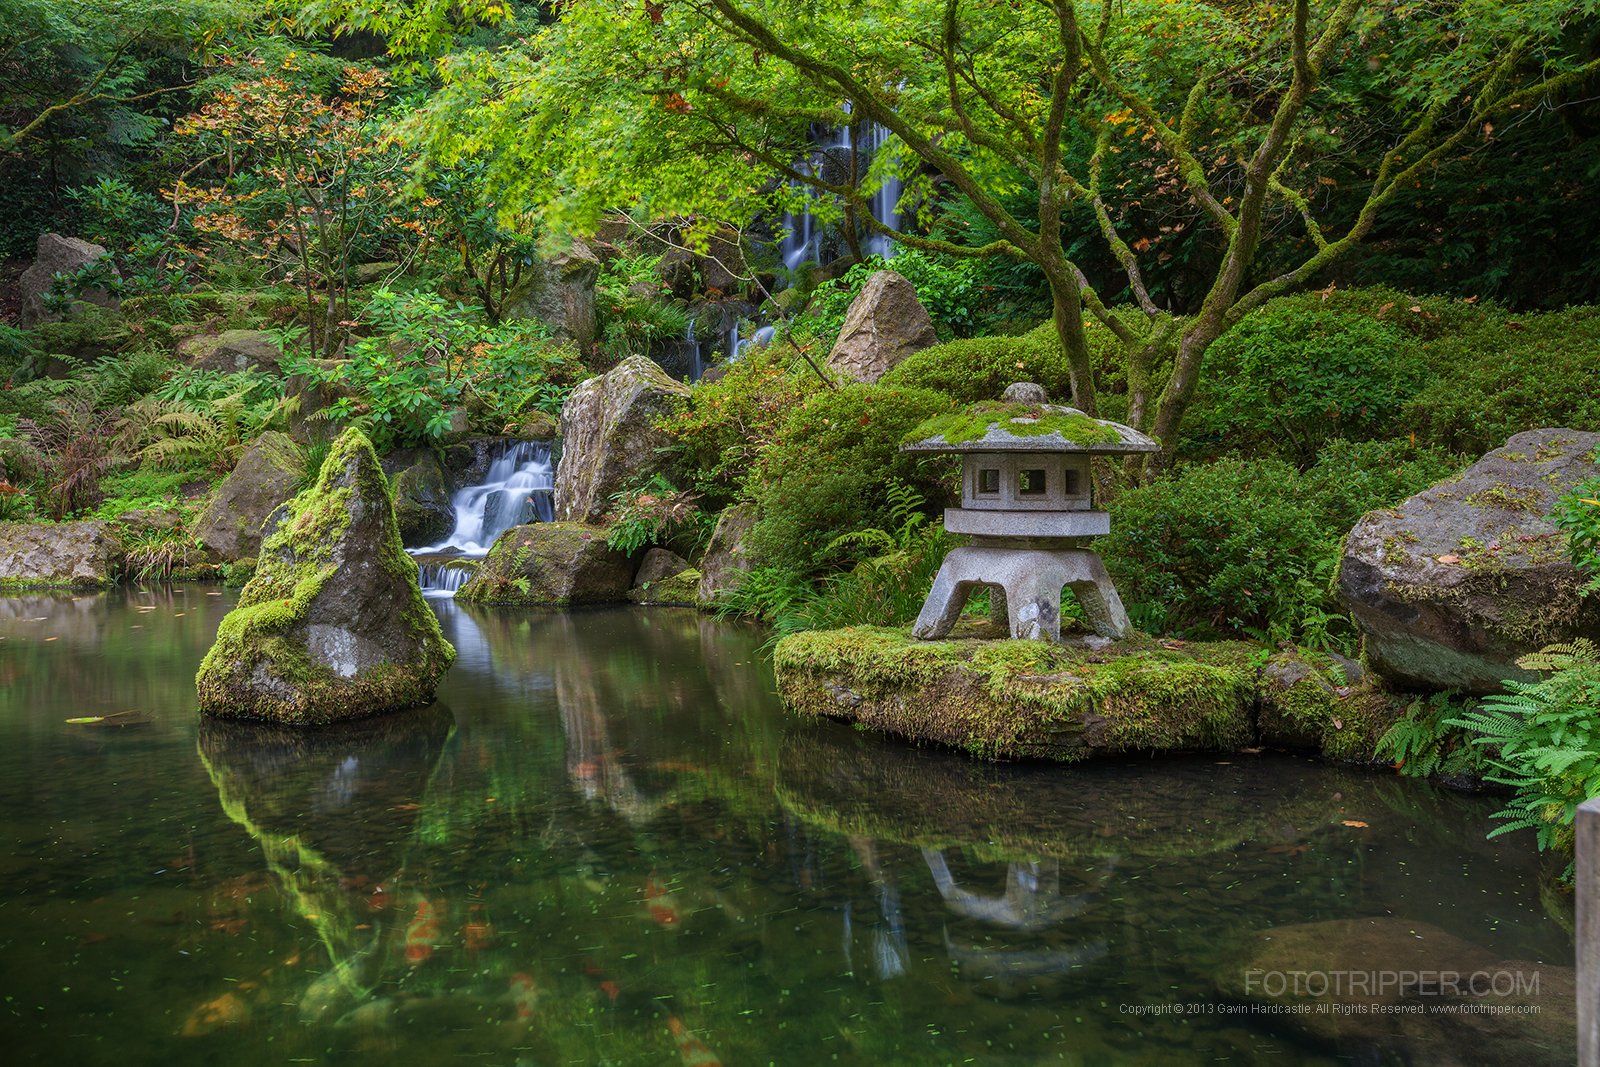 How to shoot portland japanese garden fototripper for Japanese koi water garden